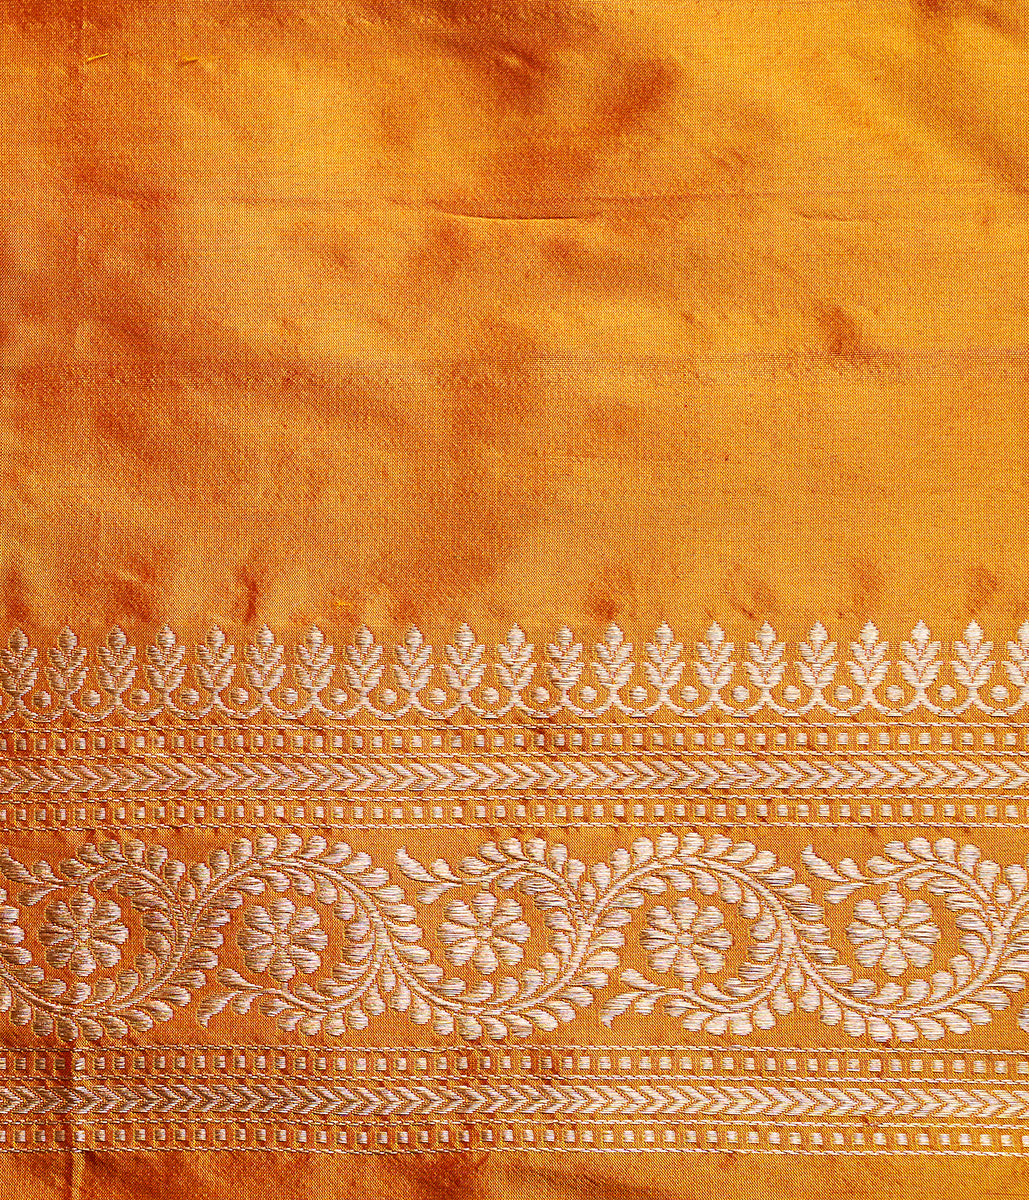 Handwoven Kadhwa booti banarasi in an unusual yellow and red dual tone